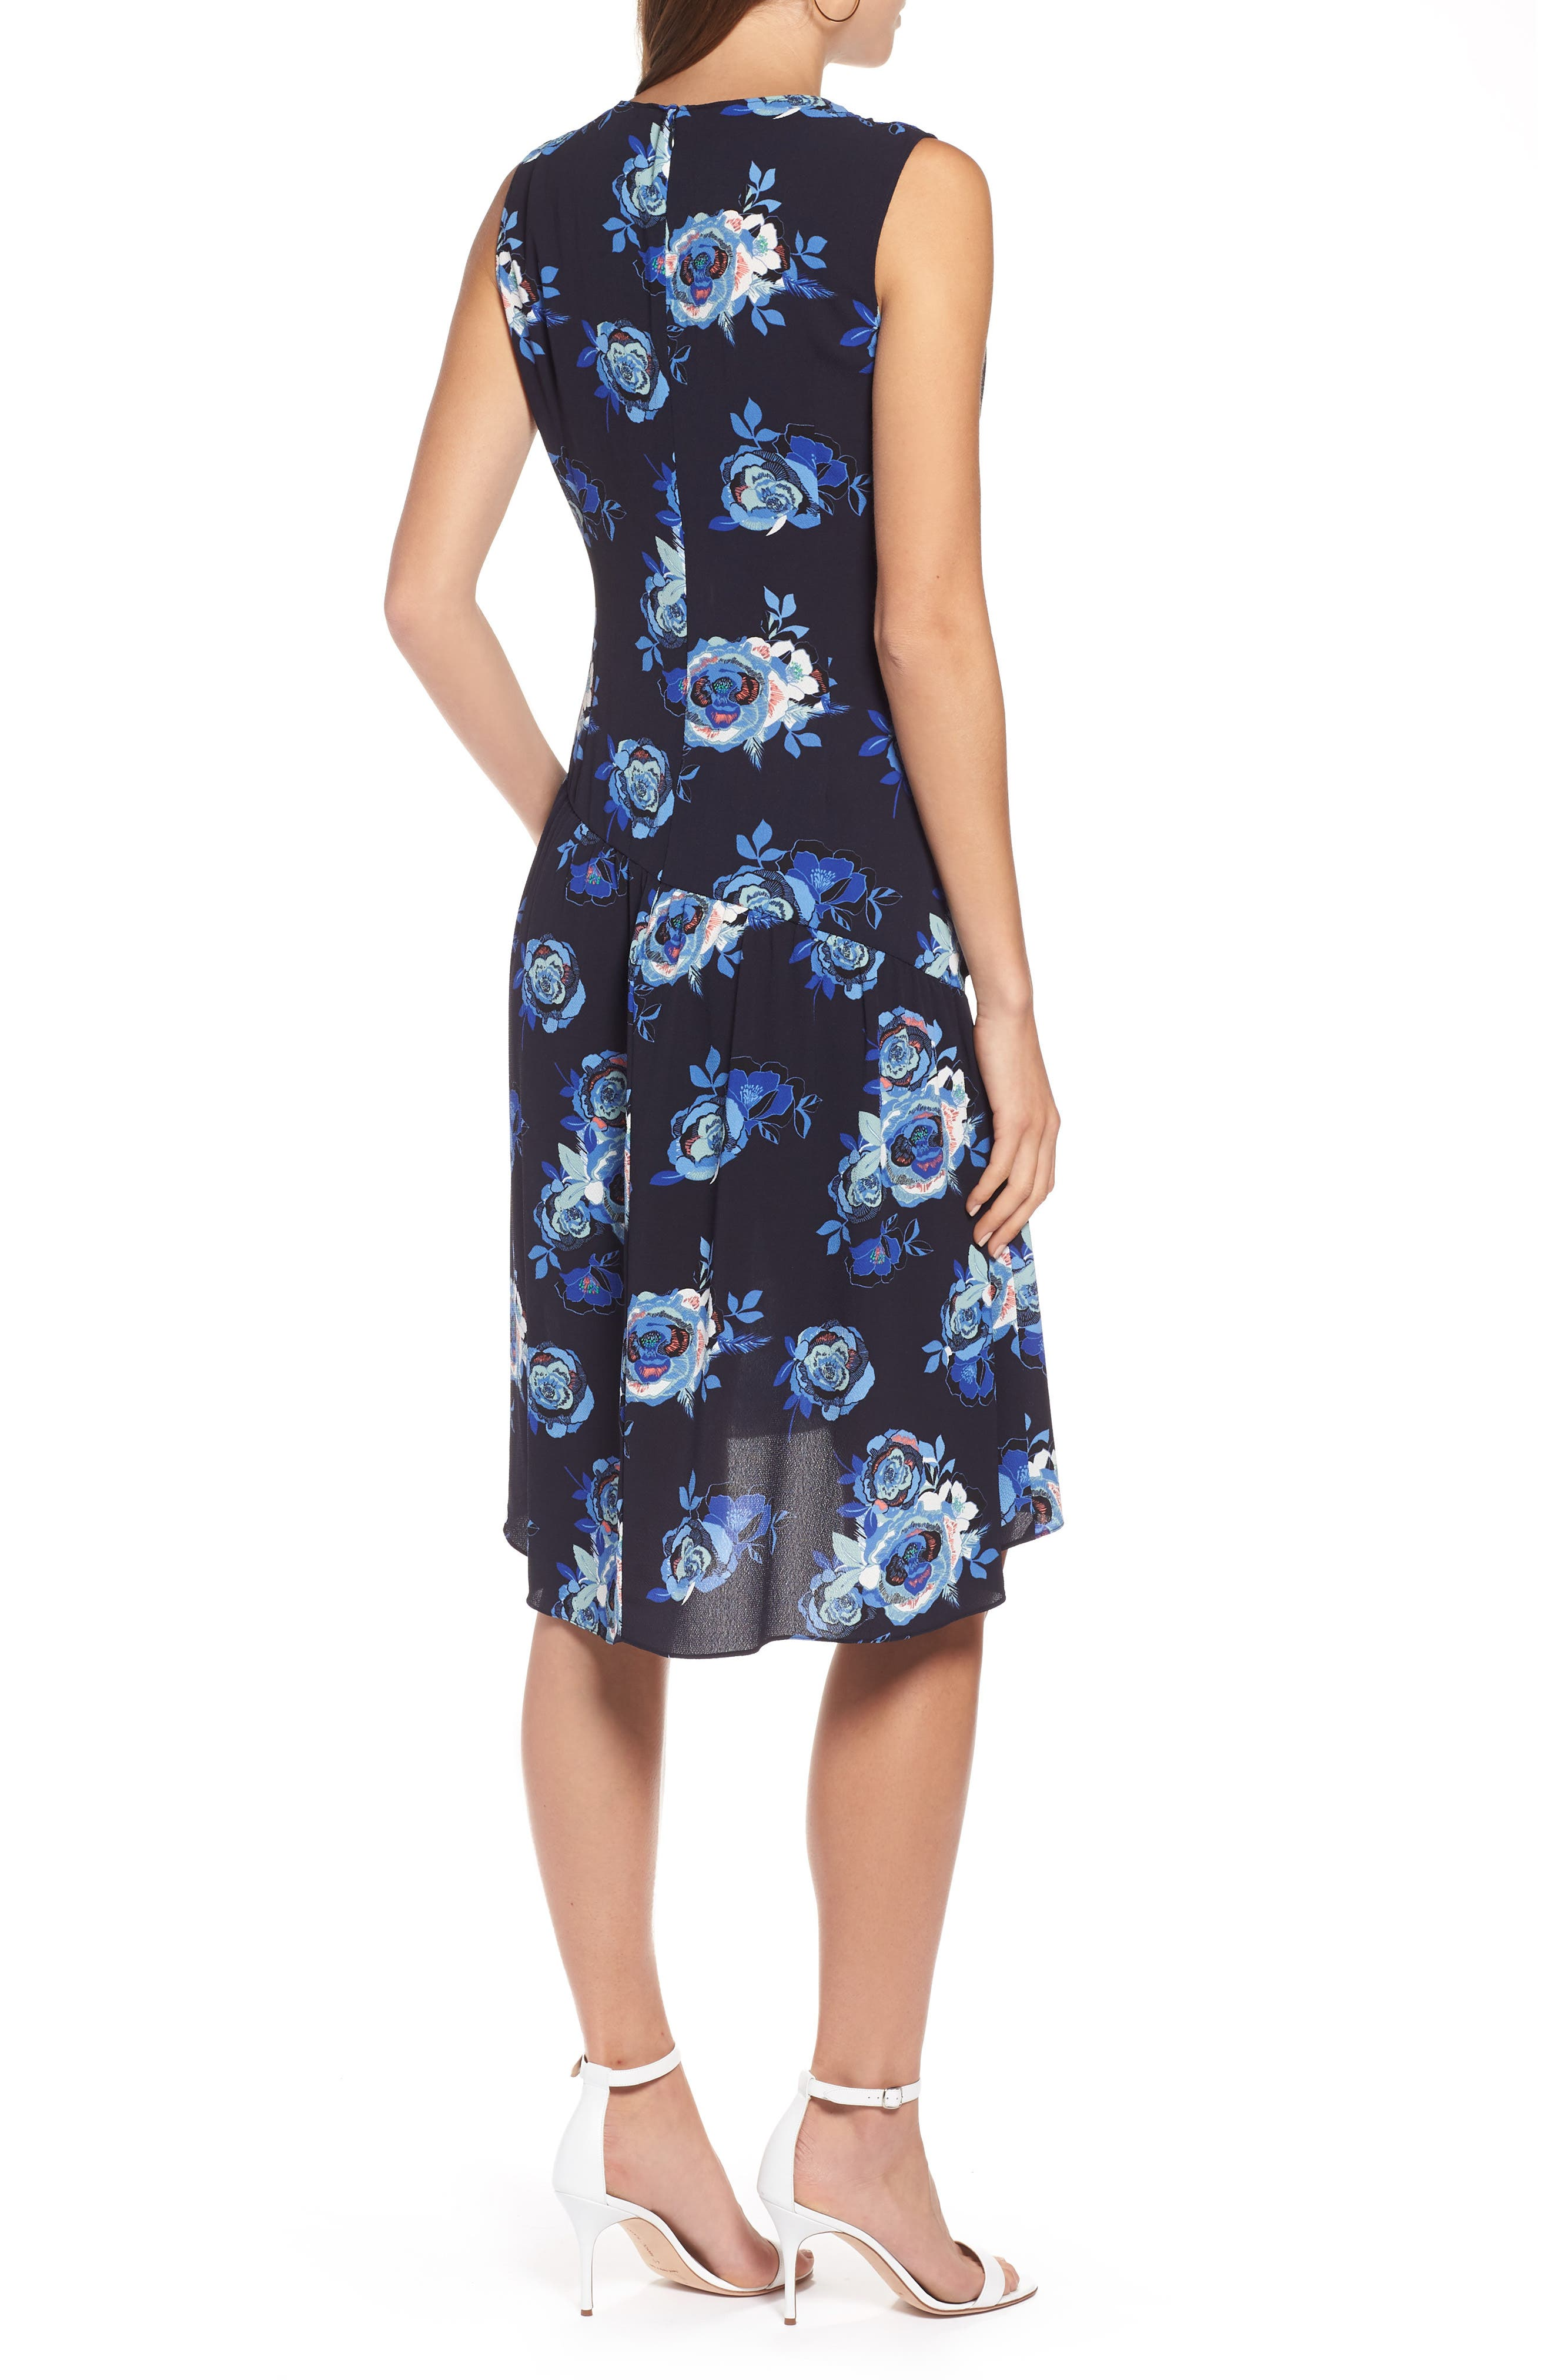 Sleeveless Ruched Dress,                             Alternate thumbnail 2, color,                             Navy- Blue Rose Print